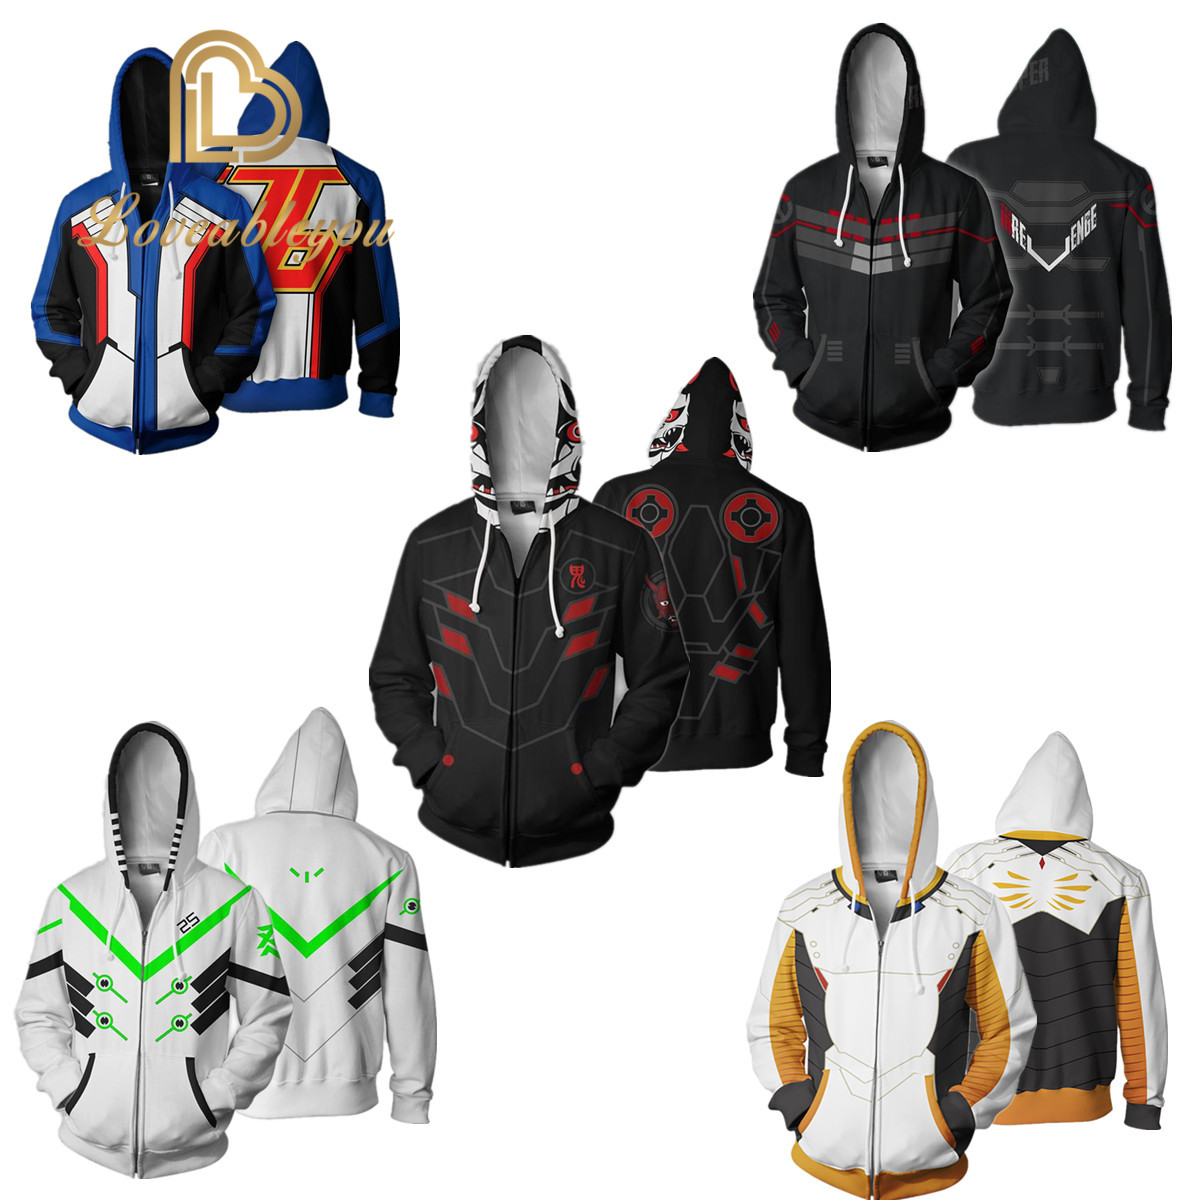 Unisex Sweatshirt Overwatch Cosplay Costumes Men Women Hoodies SOLDIER 76 Jack Morrison Pullover Tops Streetwear Coat Jackets